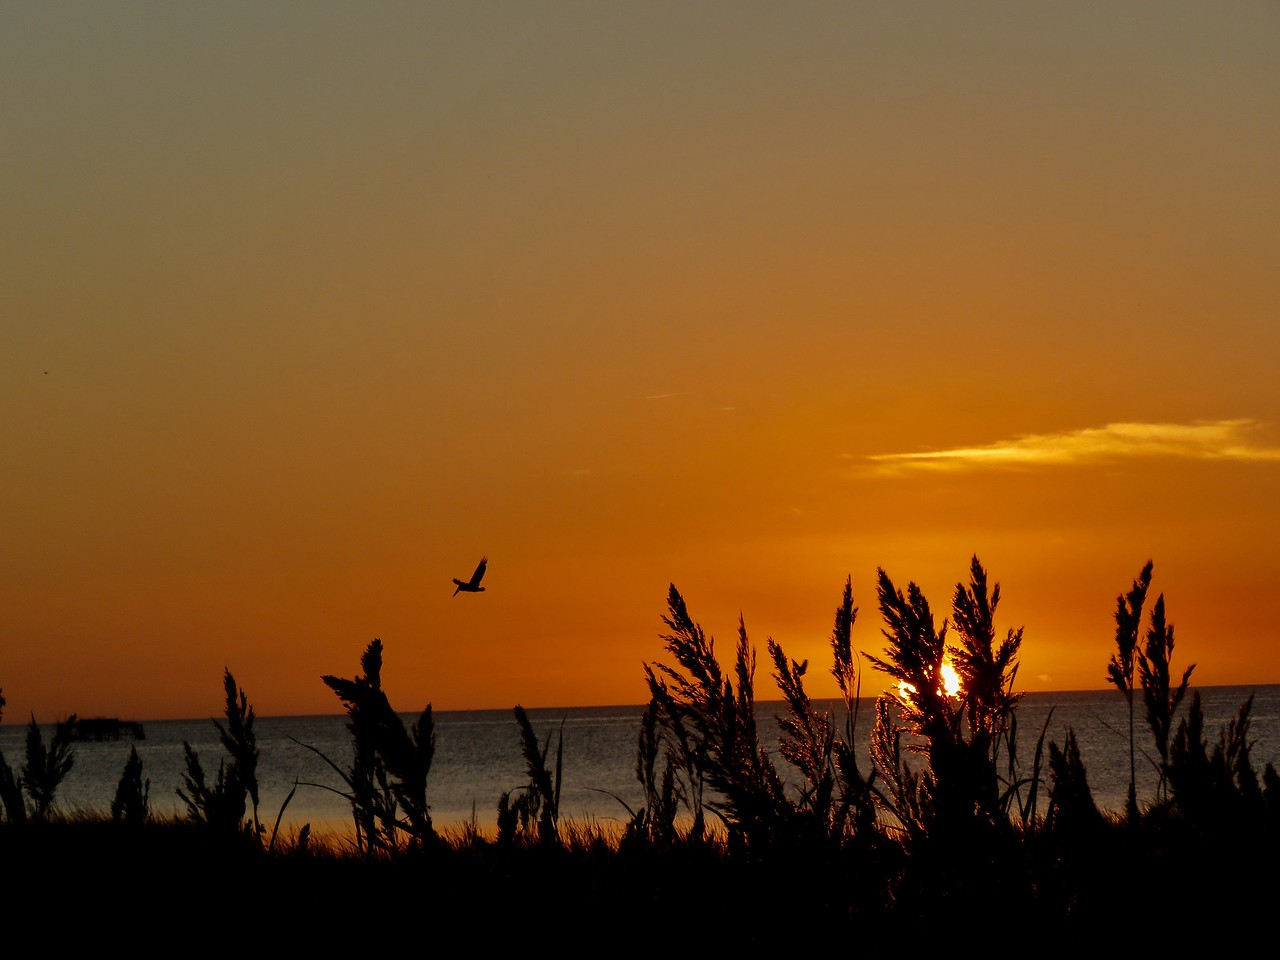 Sunset on the Outer Banks